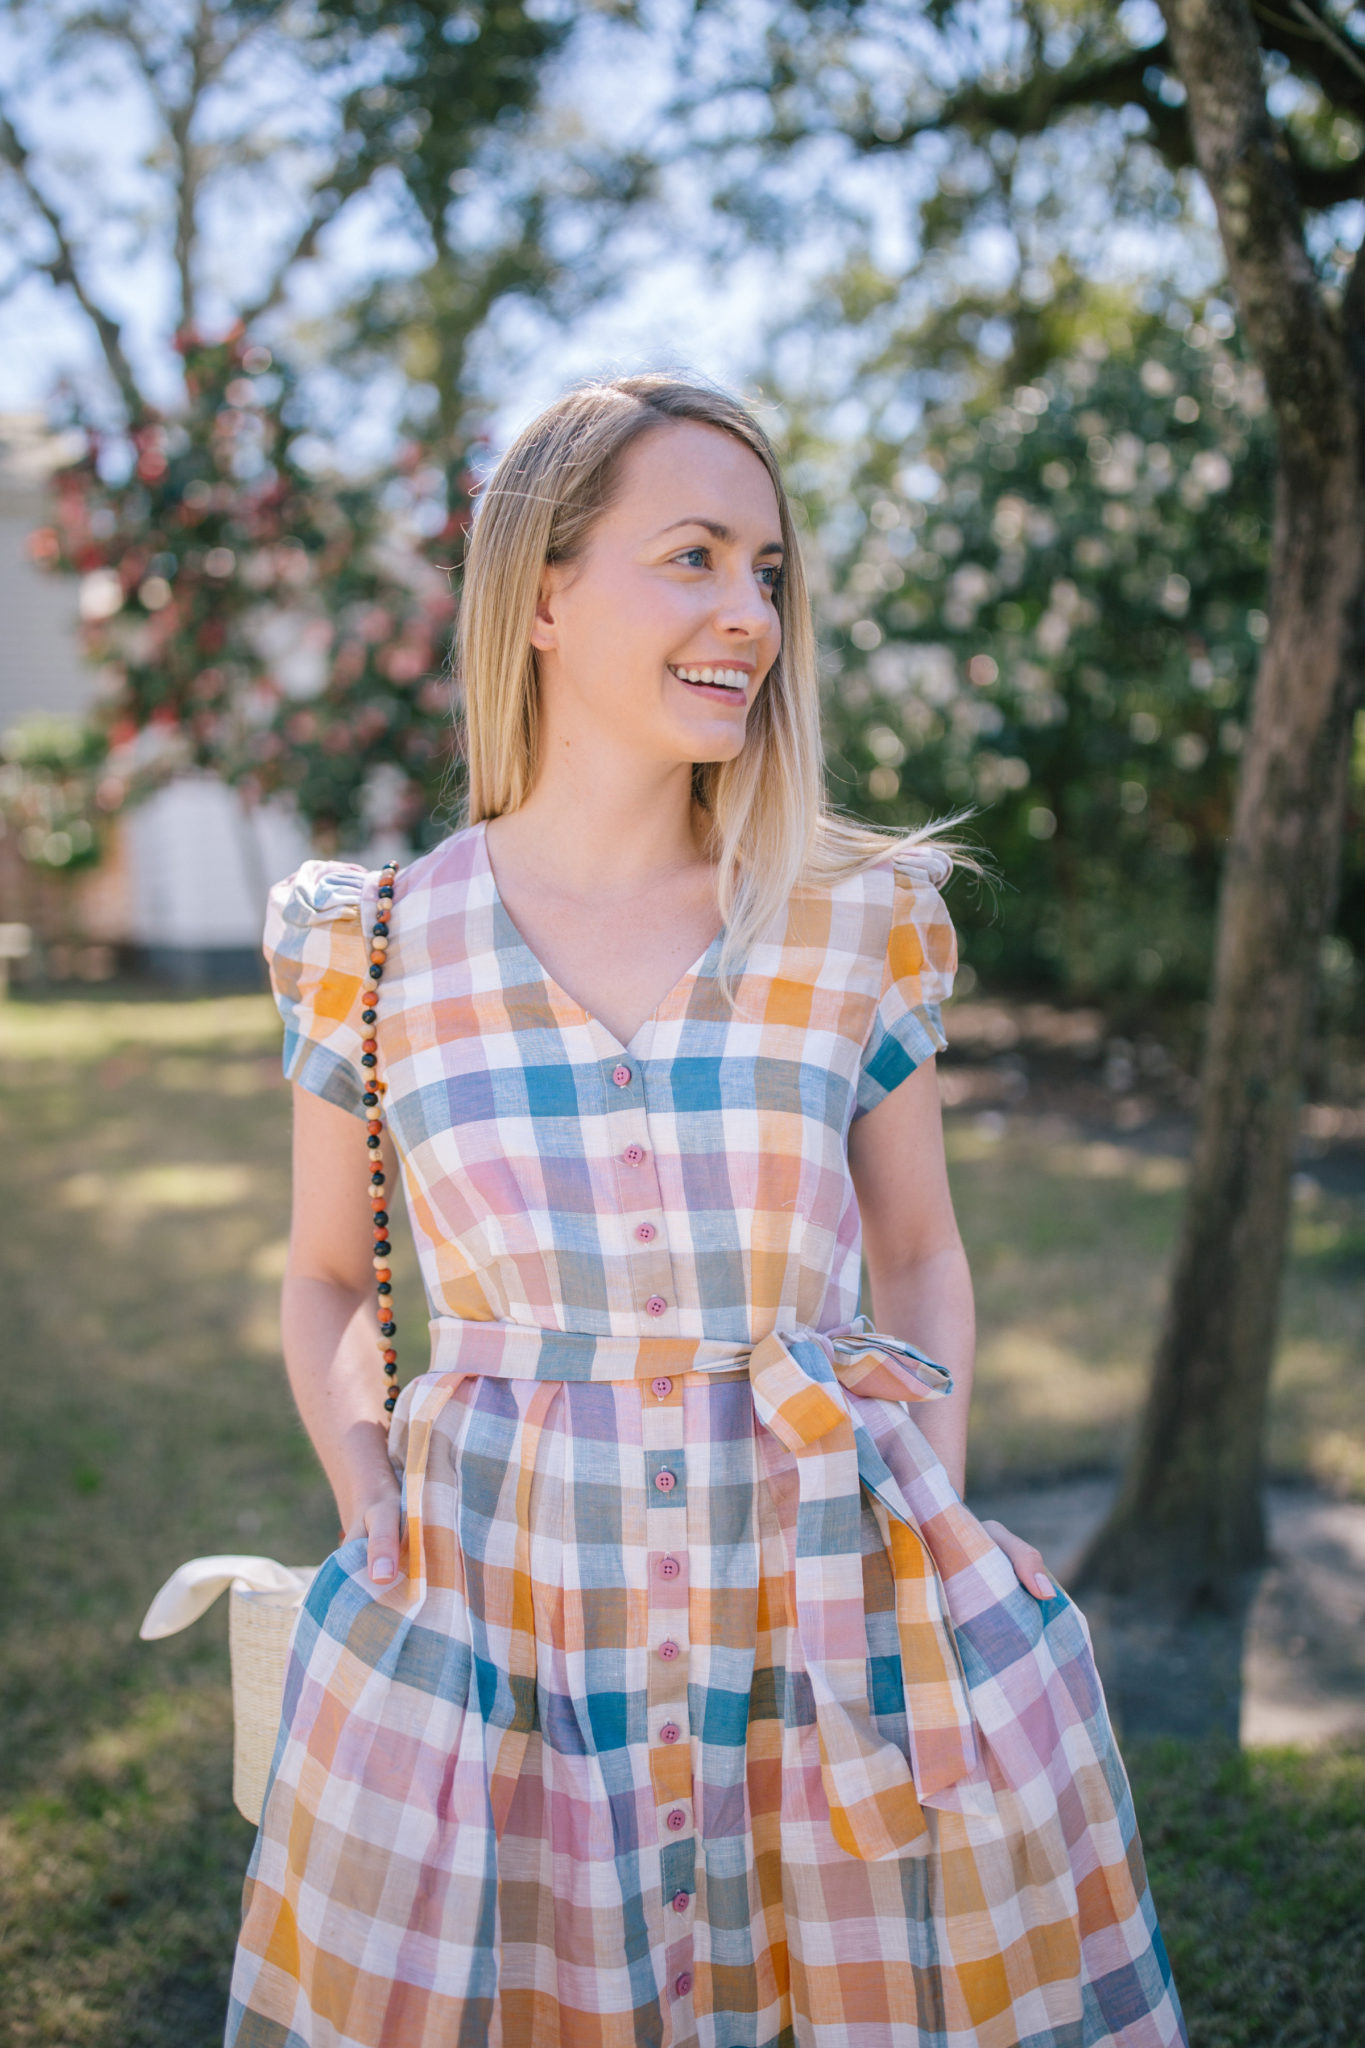 How To Wear A Gingham Dress- Gingham Puff Sleve Dresses | Rhyme & Reason